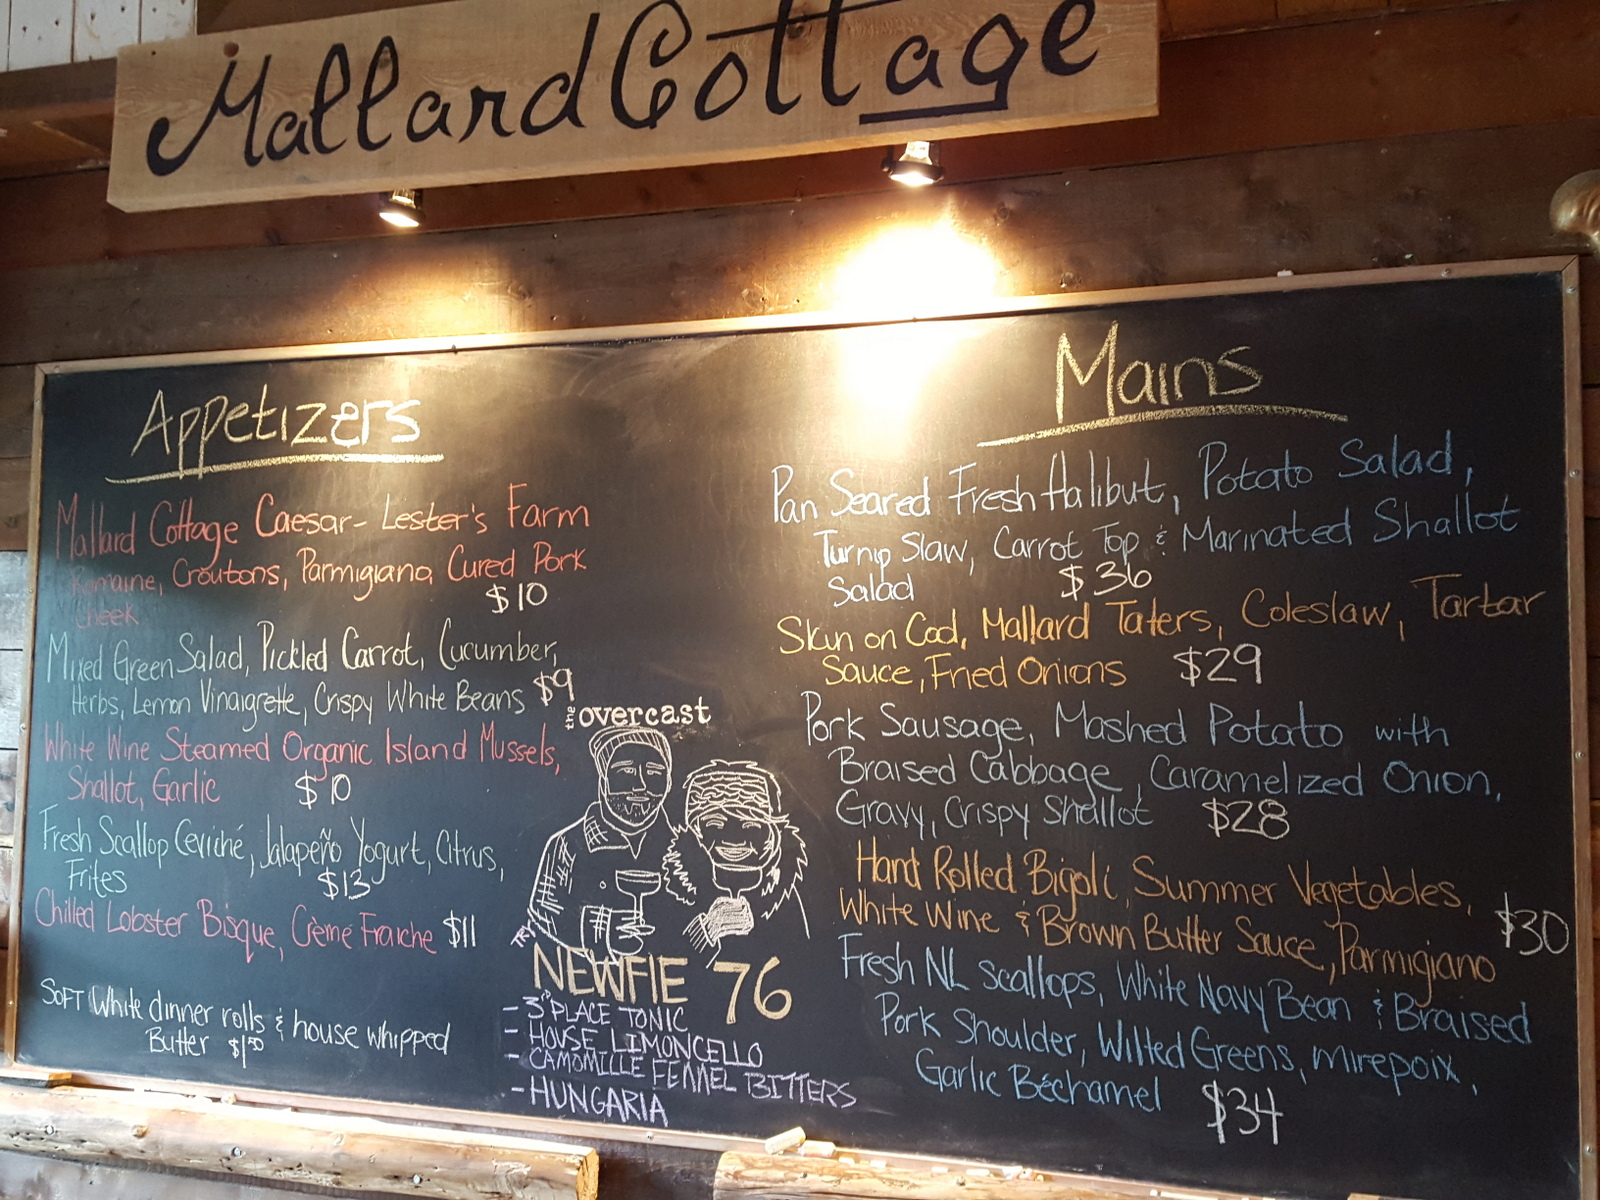 Mallard Cottage, St. John's, Newfoundland - one of my favorite places to eat this year!